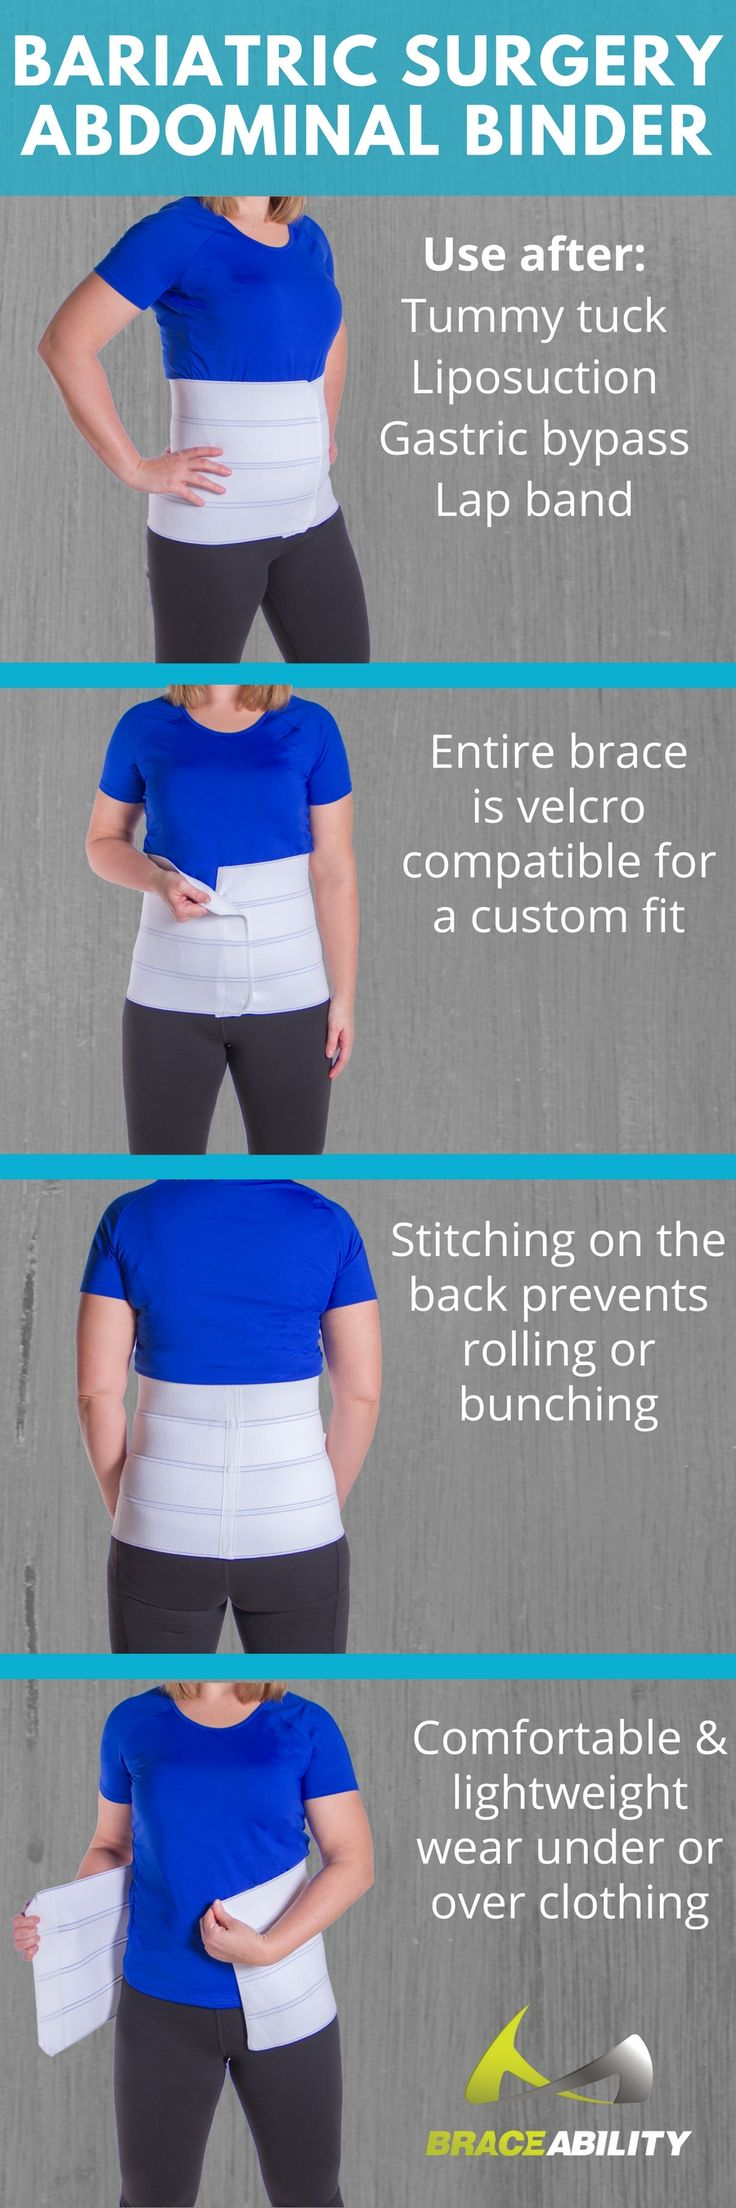 Wearing an abdominal binder after weight loss surgery is a very important component of the recovery process. This support will help with things like tummy tuck, liposuction, gastric bypass and lap band incision scars.